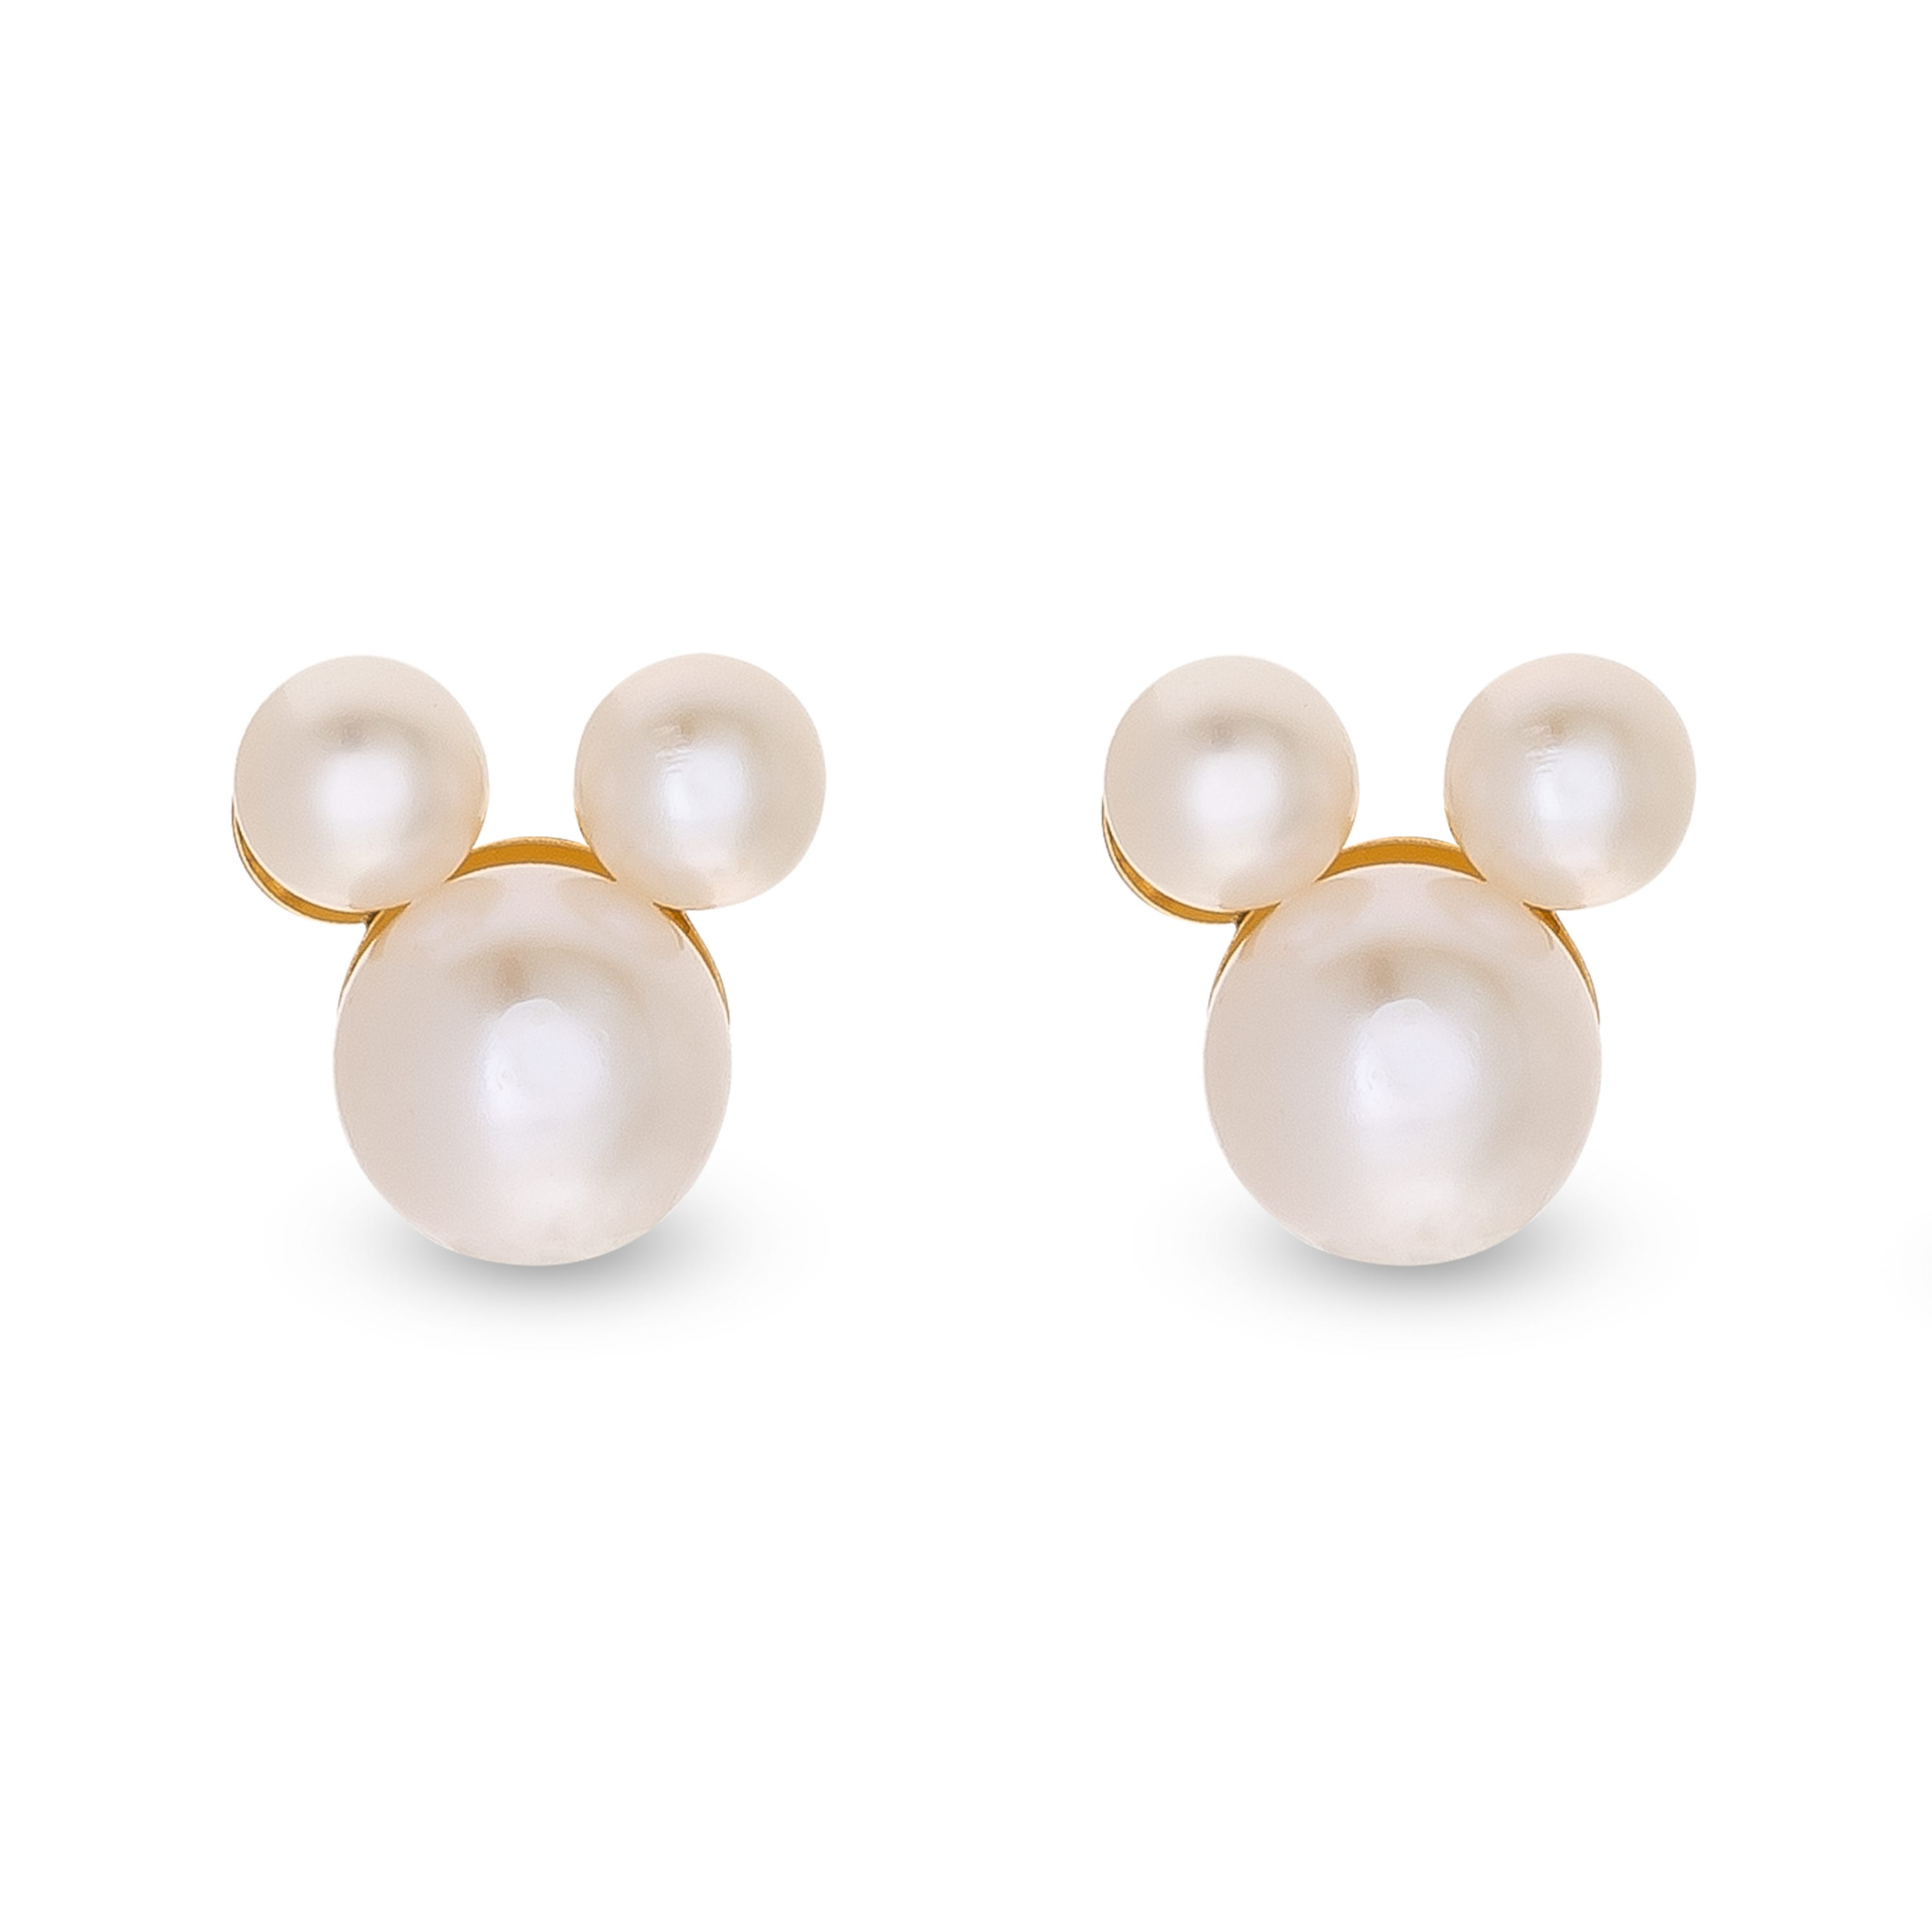 DISNEY© Mickey Pearl Stud Earrings in 10k Yellow Gold